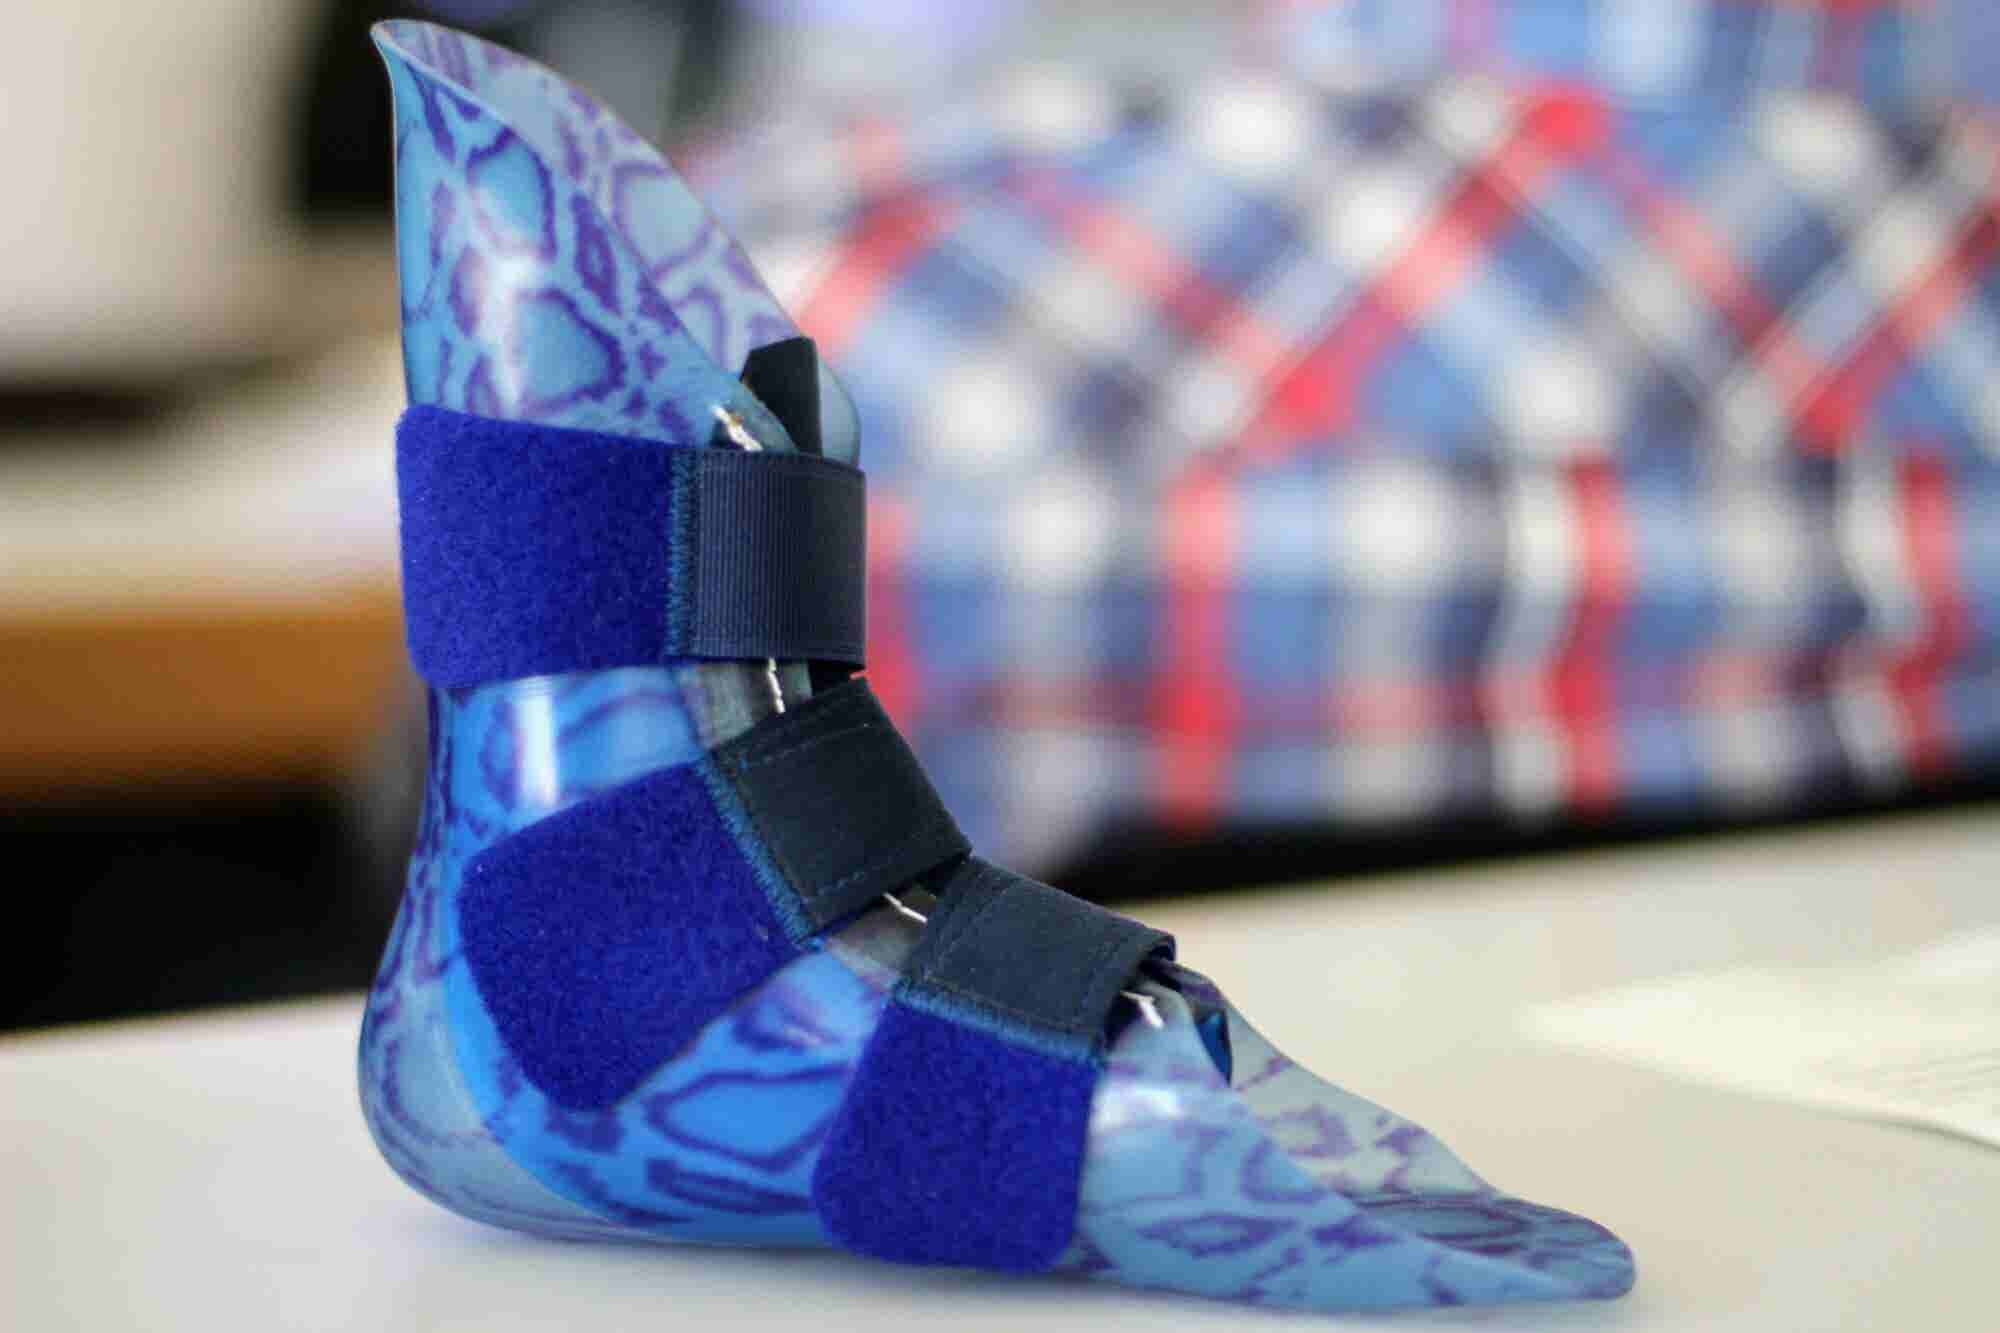 Innovating to Make Prosthetics More Accessible and Affordable